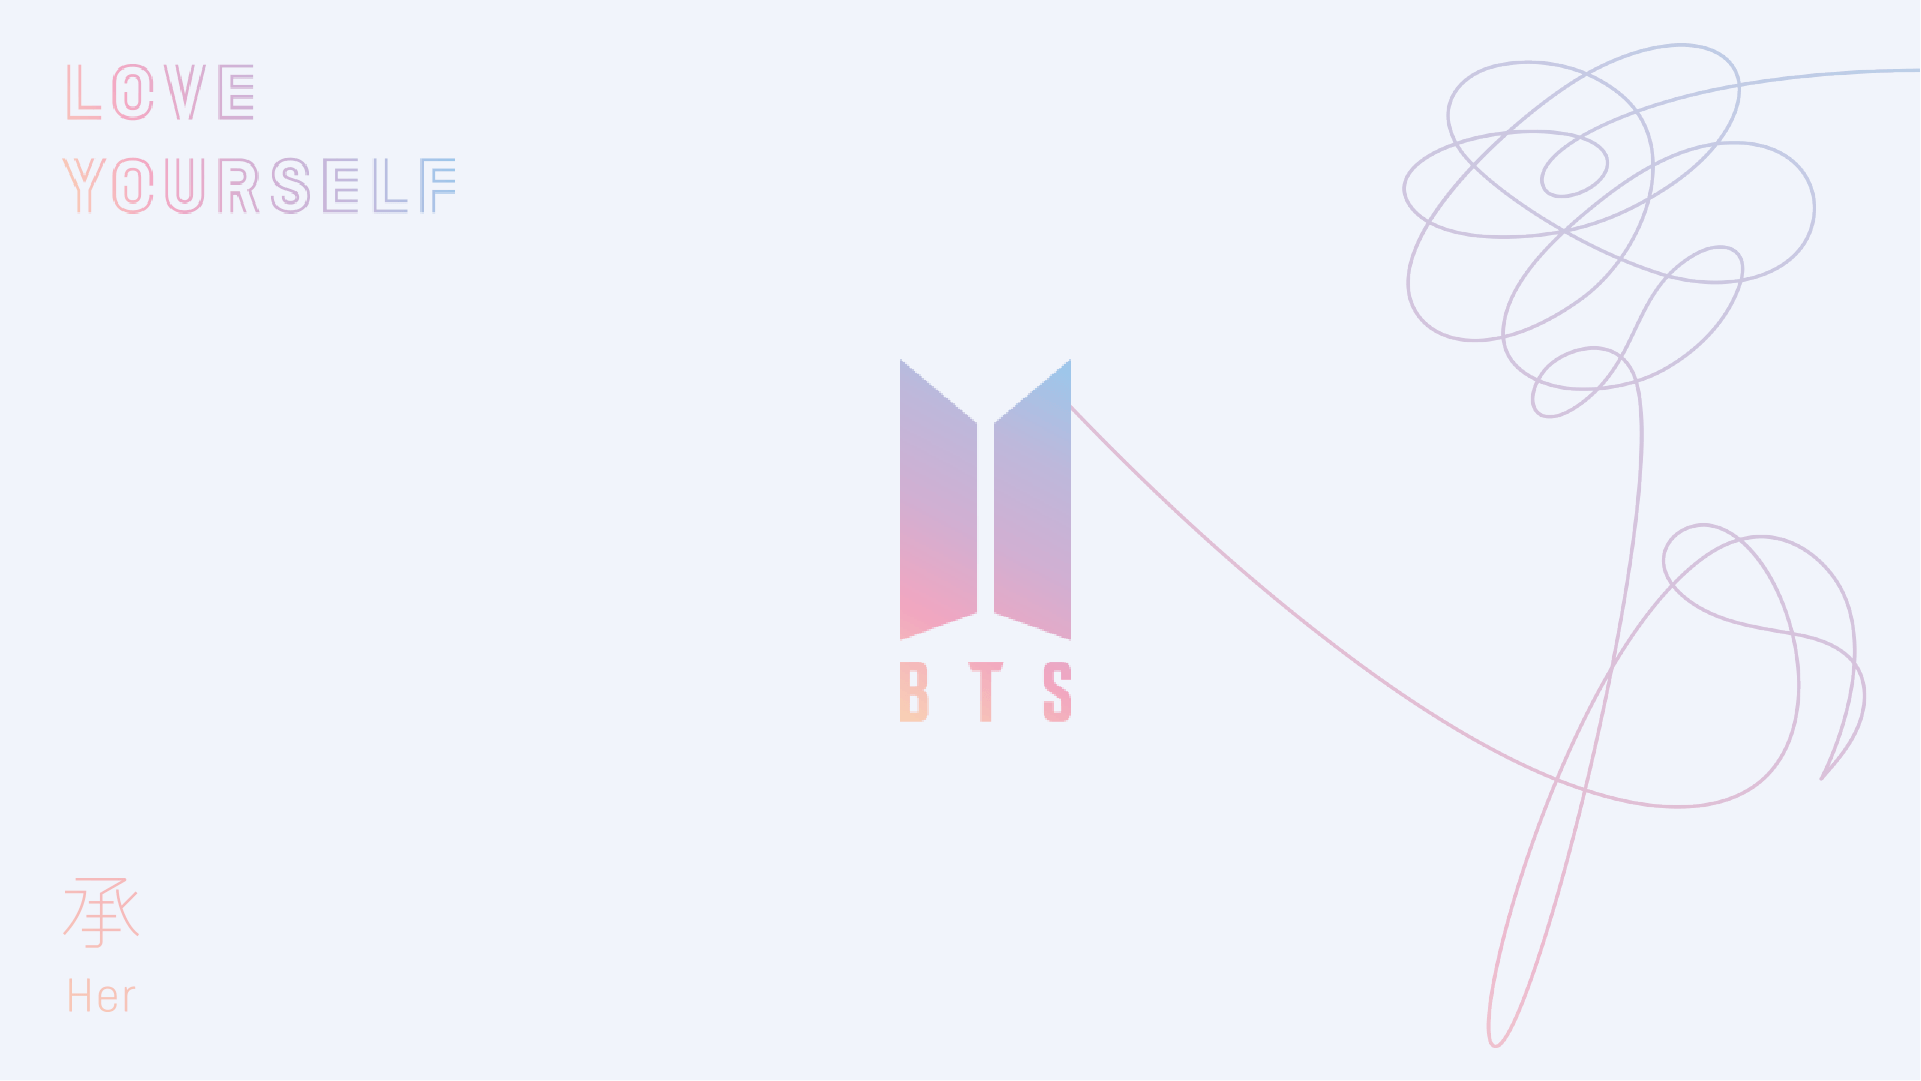 Wallpaper Love Yourself : BTS Logo Wallpapers - Wallpaper cave